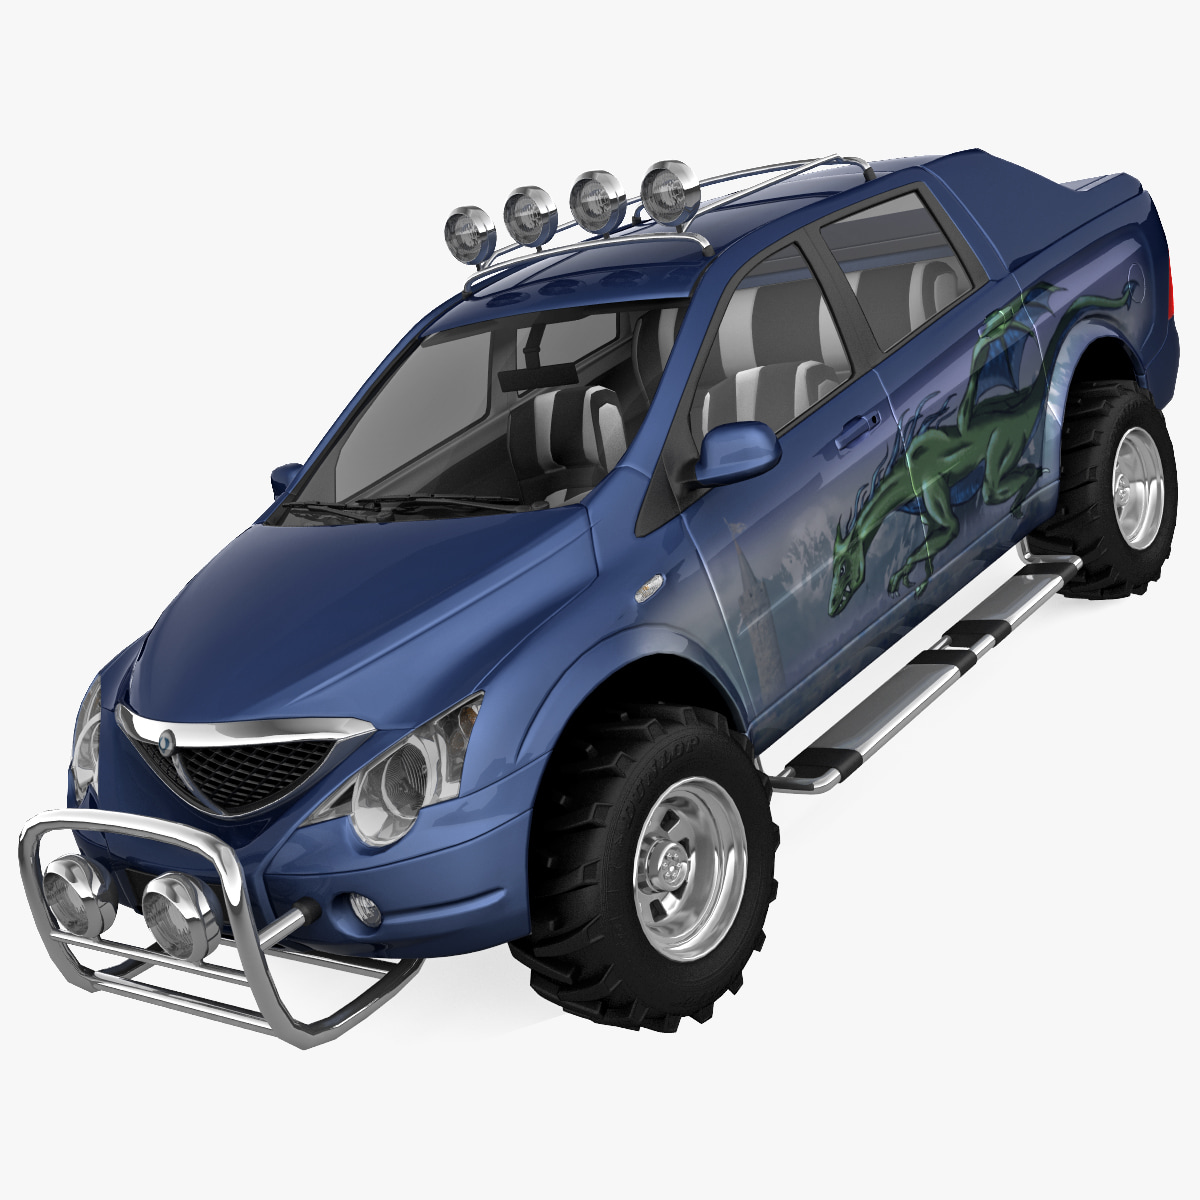 SsangYong_Actyon_Offroad_00.jpg